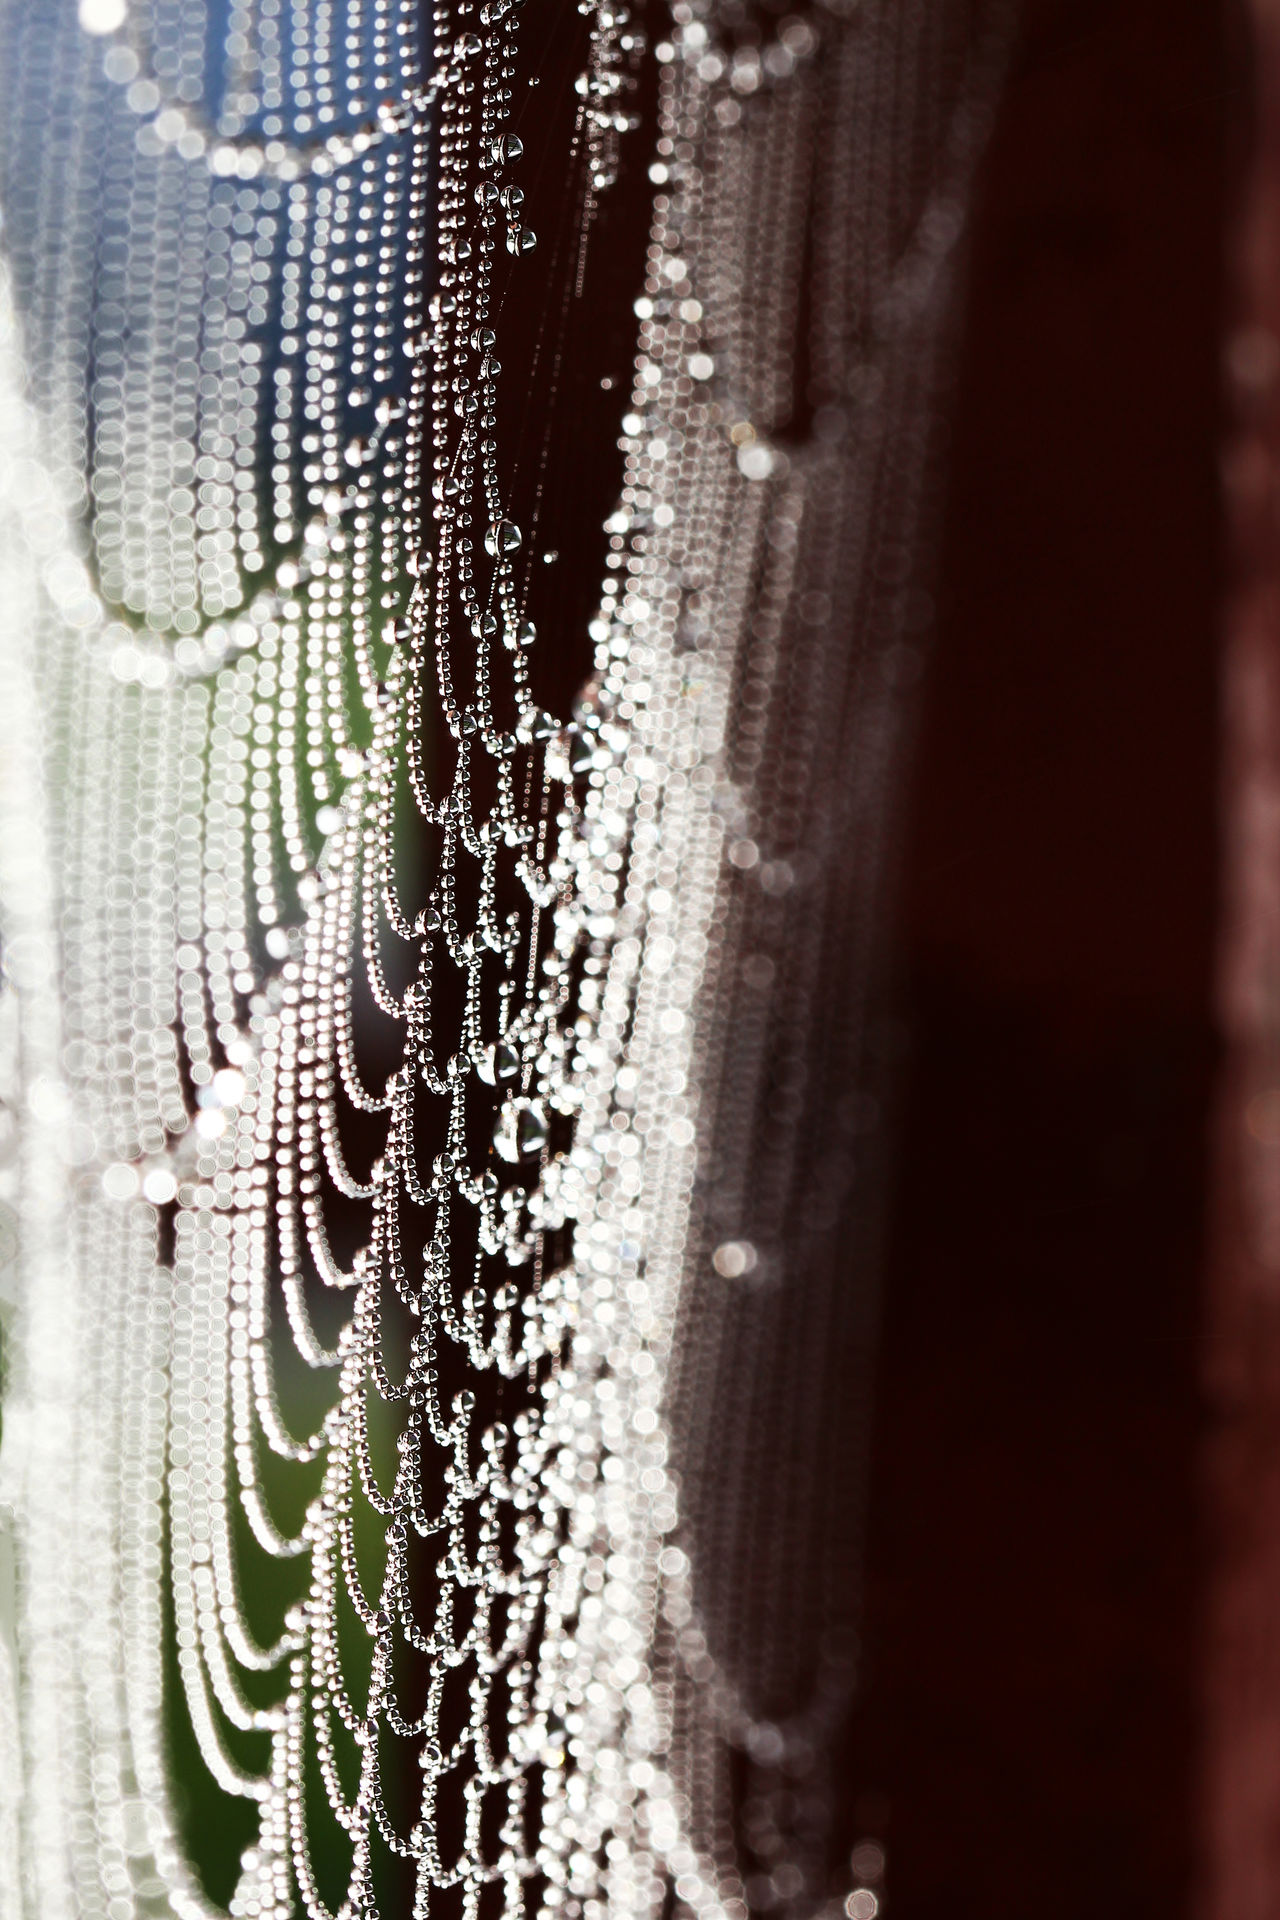 Backgrounds Close-up Day Dew Drop Exceptional Photographs EyeEm Masterclass EyeEm Nature Lover Focus On Foreground Fragility Freshness Hello World Macro Nature Netting No People Outdoors Rain Raindrops Spider Web Summer The Week Of Eyeem Water Wet